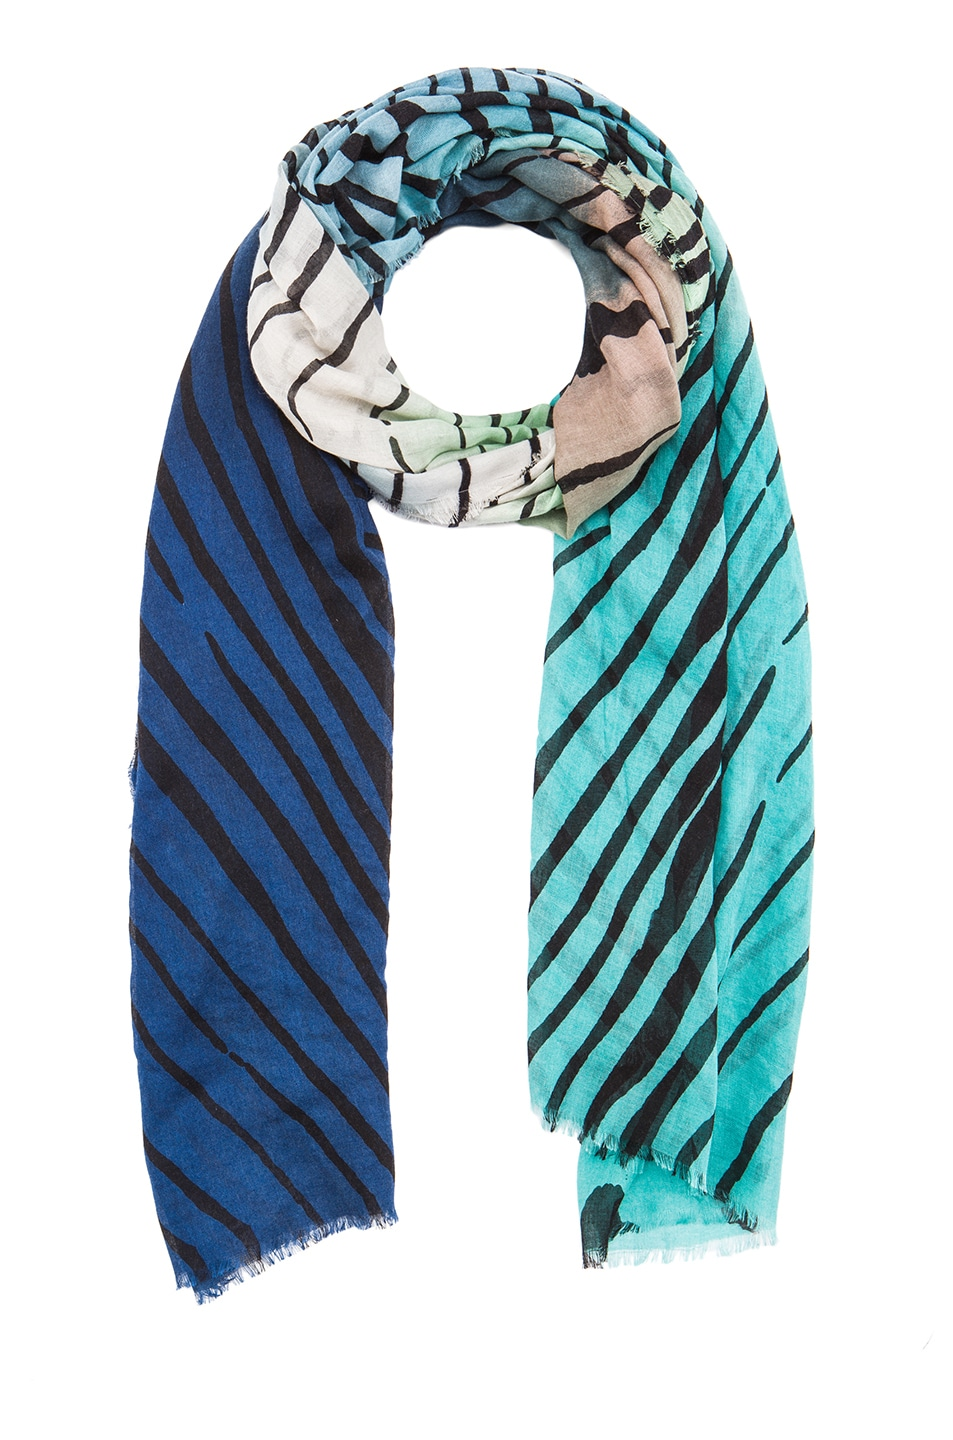 Image 2 of Diane von Furstenberg Hanovar Silk & Wool Scarf in Tiger Tree Gradient Teal